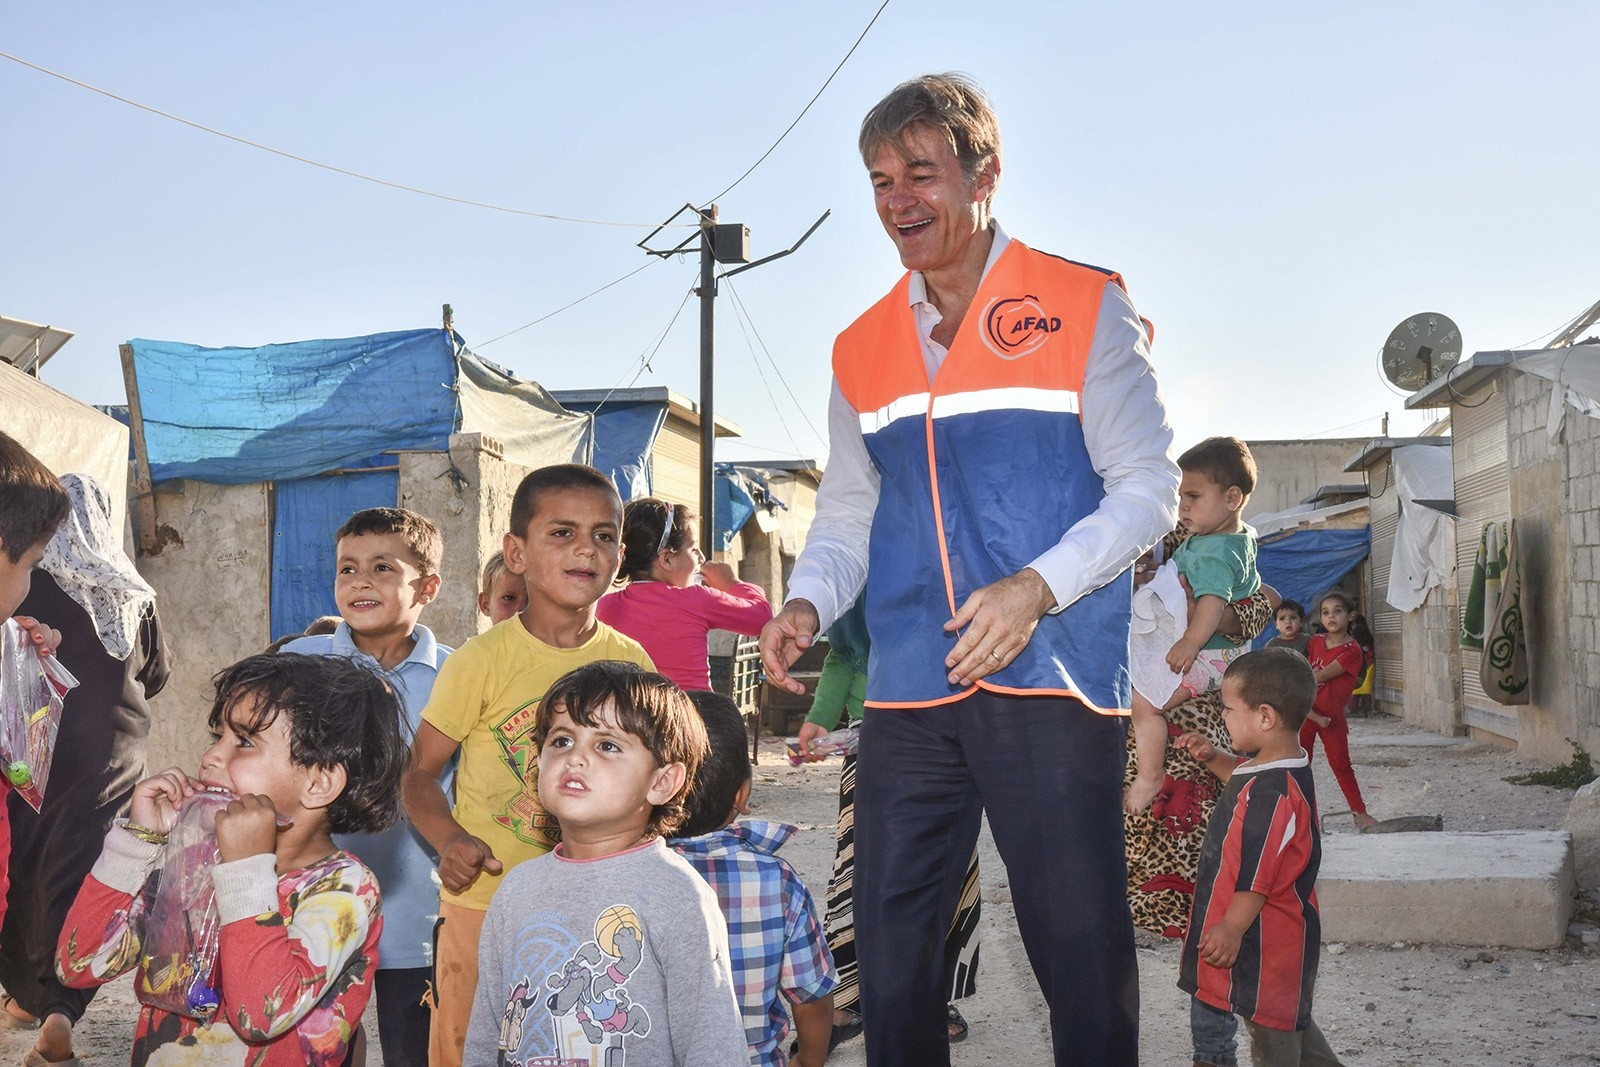 Dr. Öz gives medical assistance to Syrian children during visit to Azaz